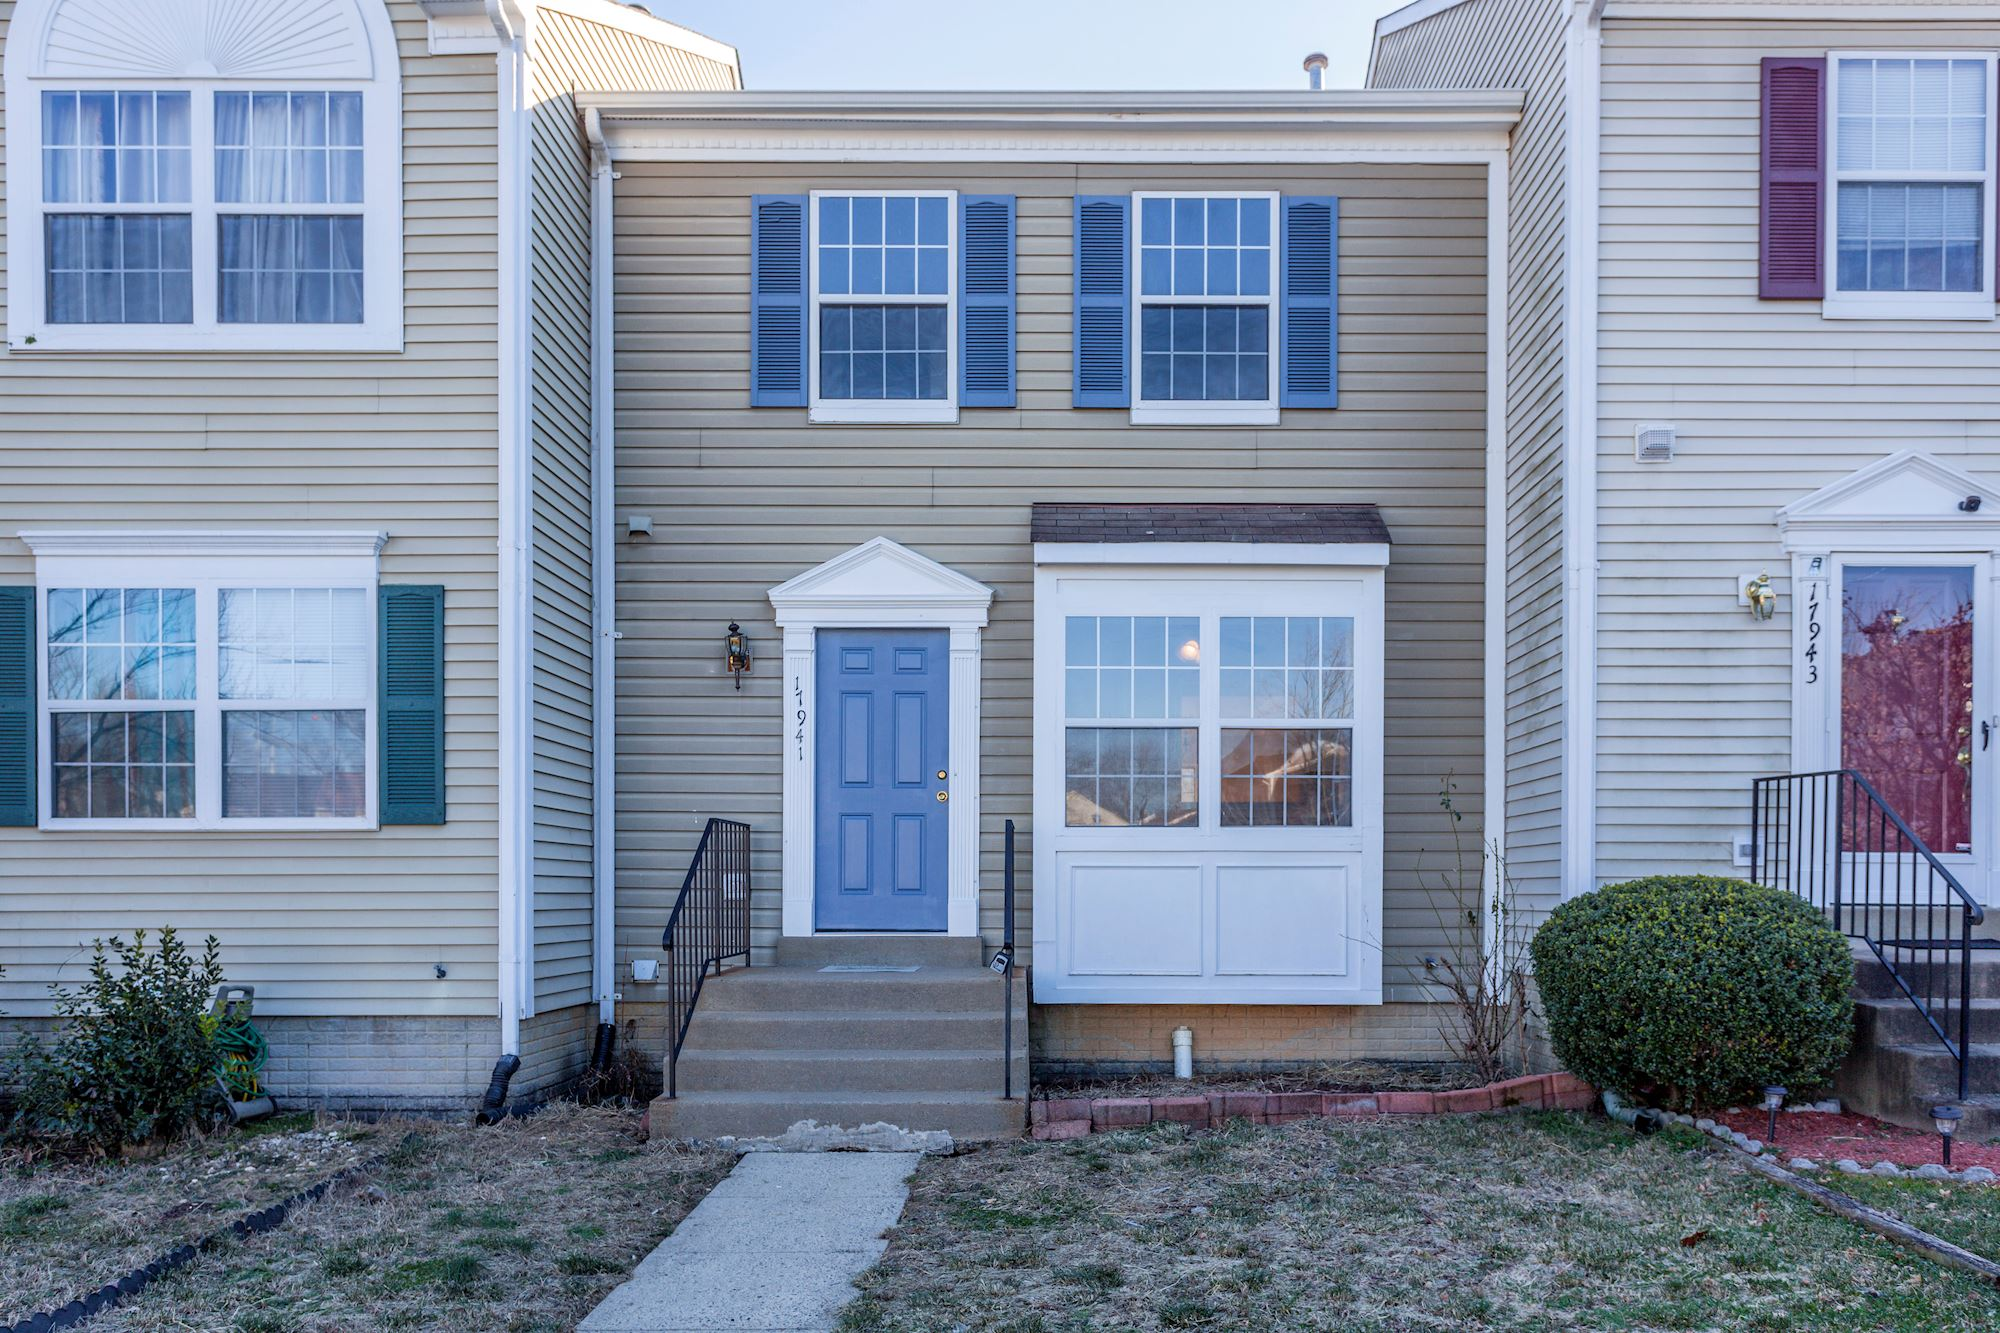 NEW LISTING: 3 BD Fantastic Townhome in Dumfries, VA